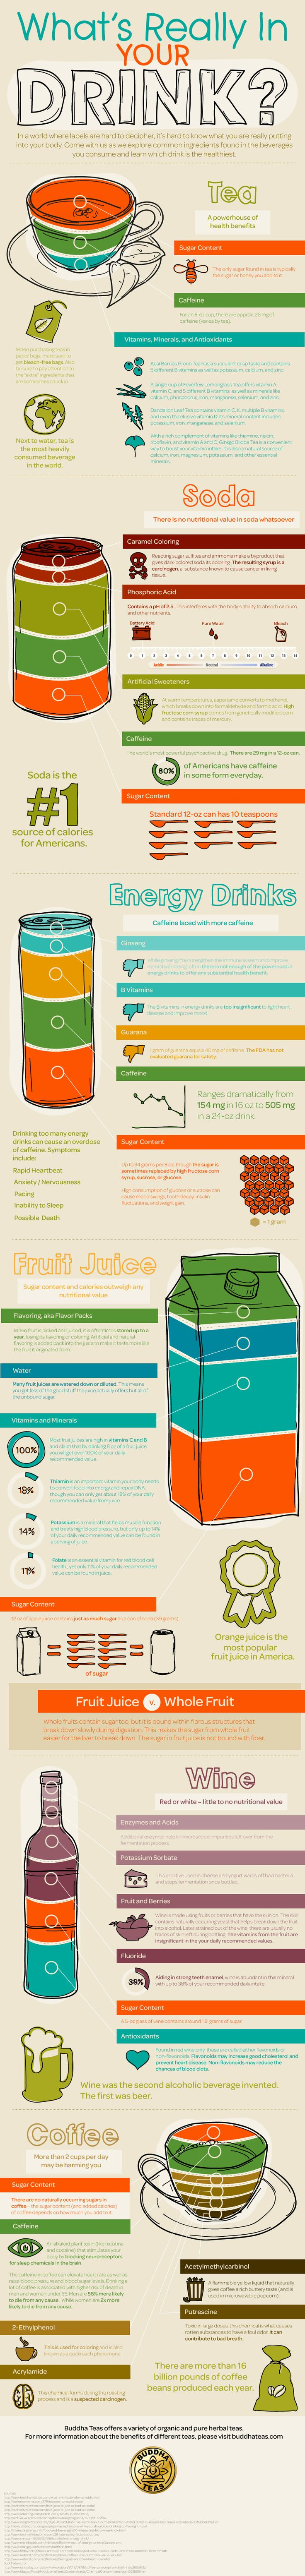 Tea vs Soda vs Energy Drinks vs Juice vs Wine vs Coffee - everything you need to know about the beverages you love!